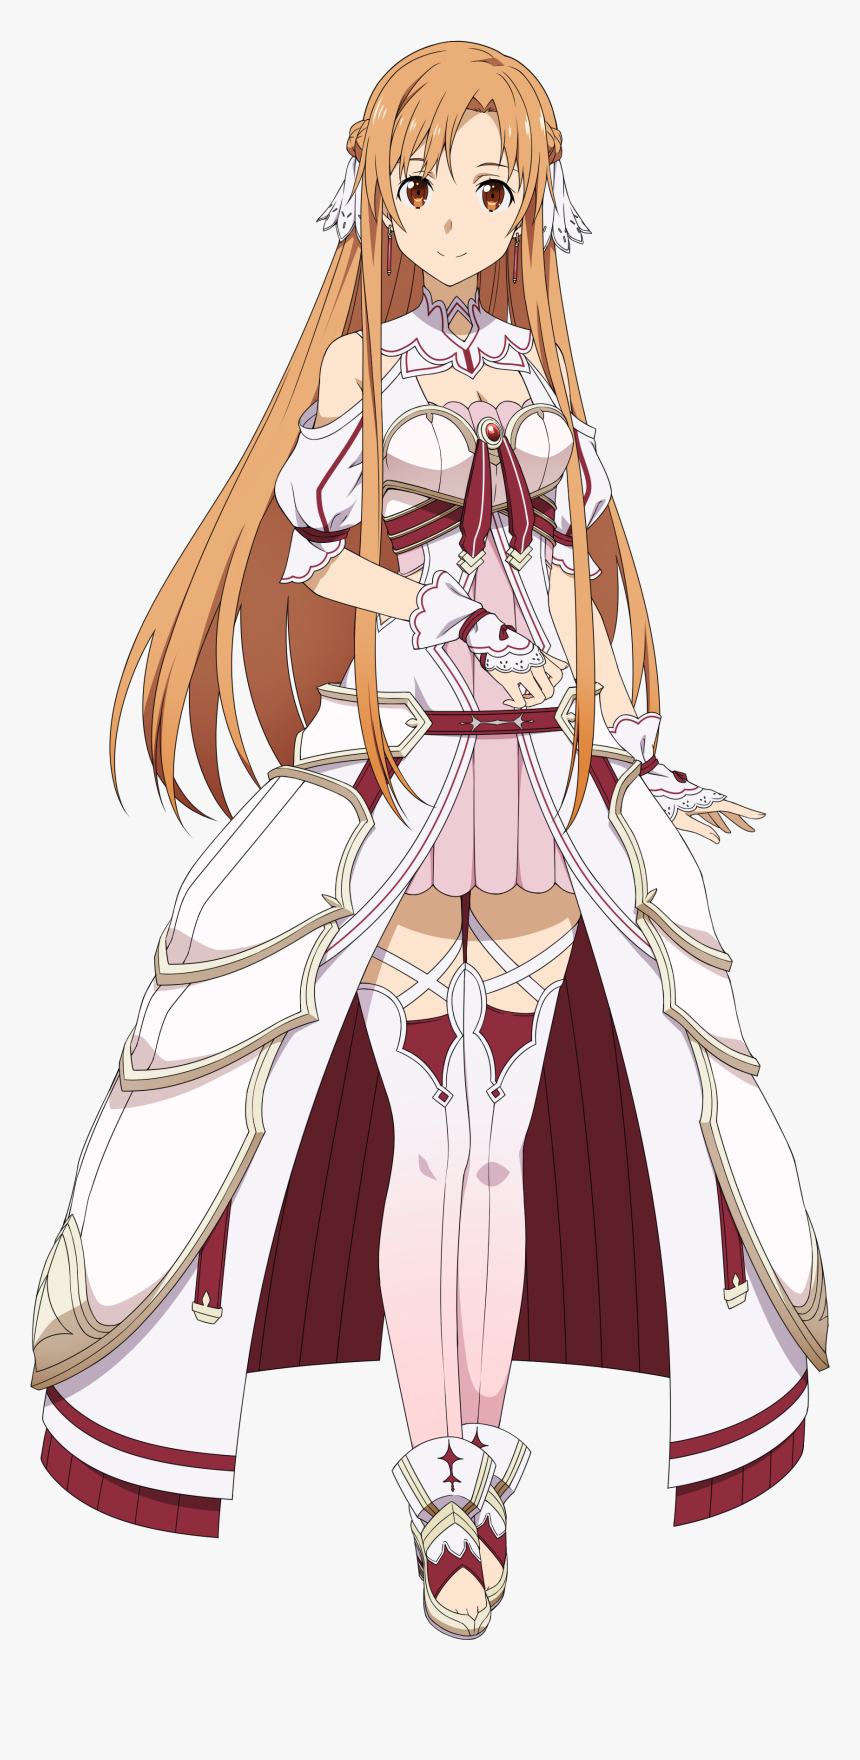 Sao Alicization Lycoris Asuna Hd Png Download Transparent Png Image Pngitem